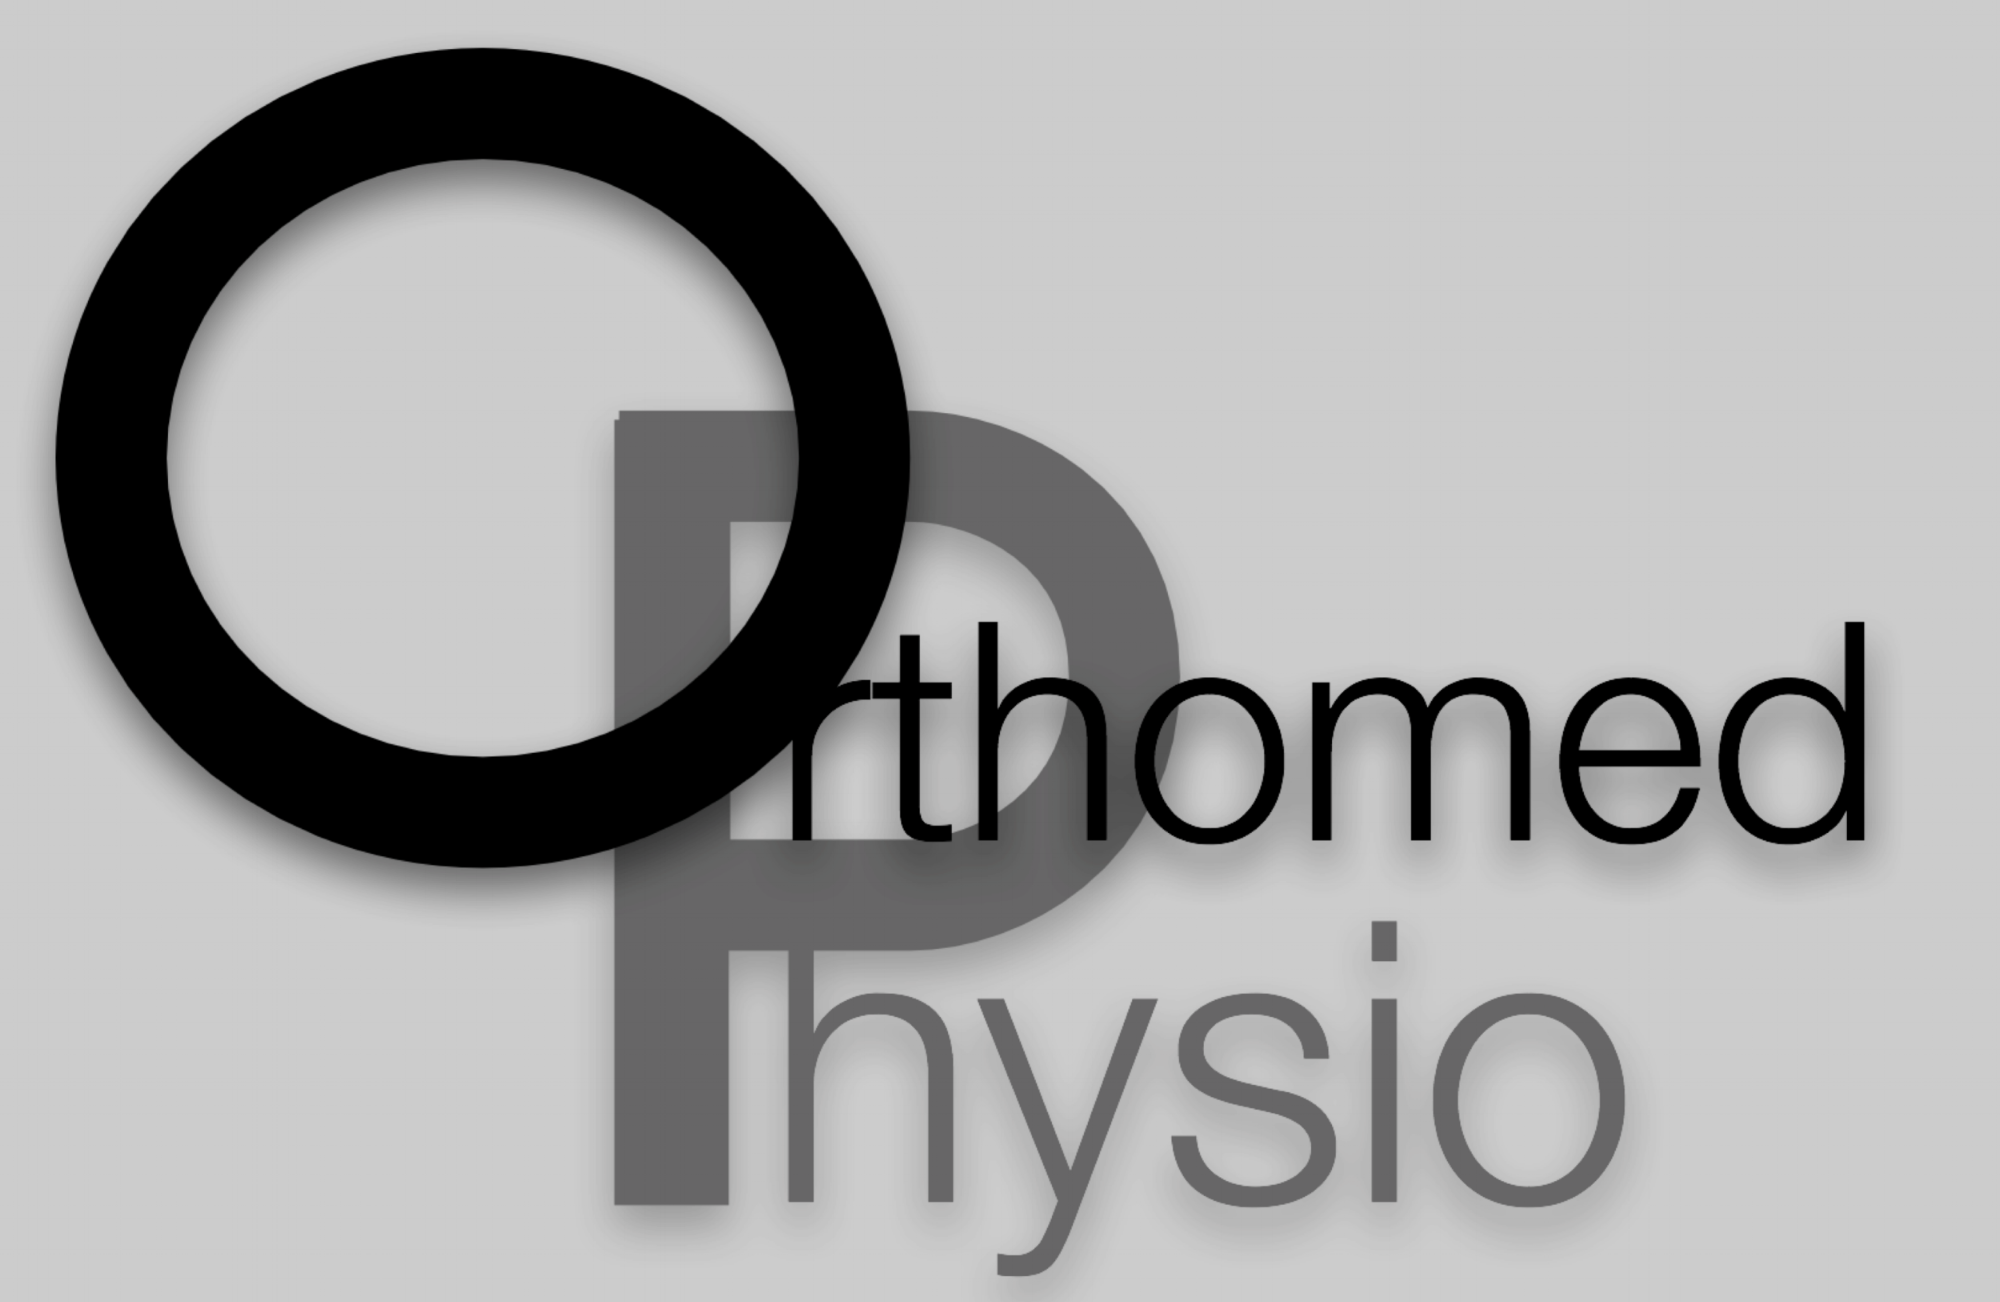 10% discount on all treatments at Orthomed   With a wealth of experience in treating elite sporting teams Orthomed,they are committed to helping patients realise their potential through a holistic, individualised approach that will help overcome pain and achieve goals.They treat the cause, not just the symptoms and teach you how to prevent recurrence.